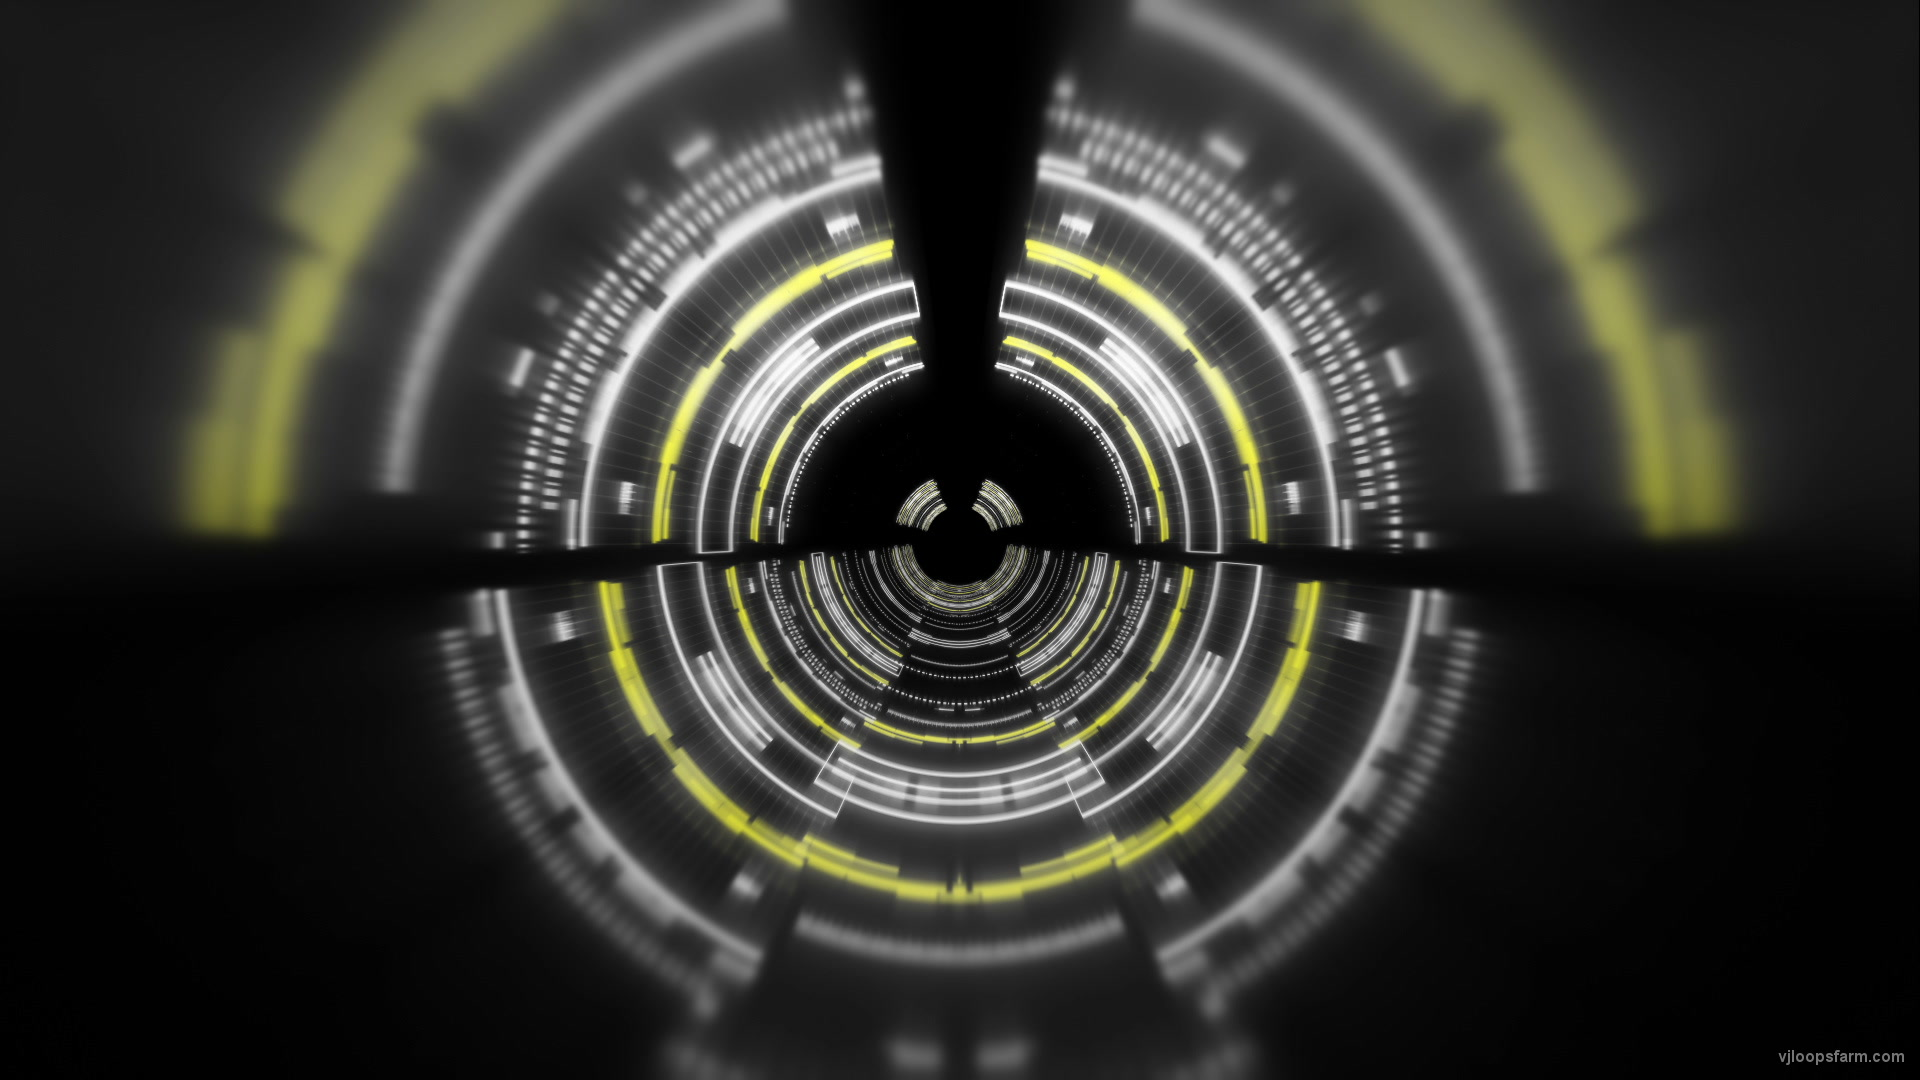 vj video background Tunnel-AI-Flow-Digital-Flight-Video-Art-Vj-Loop_003